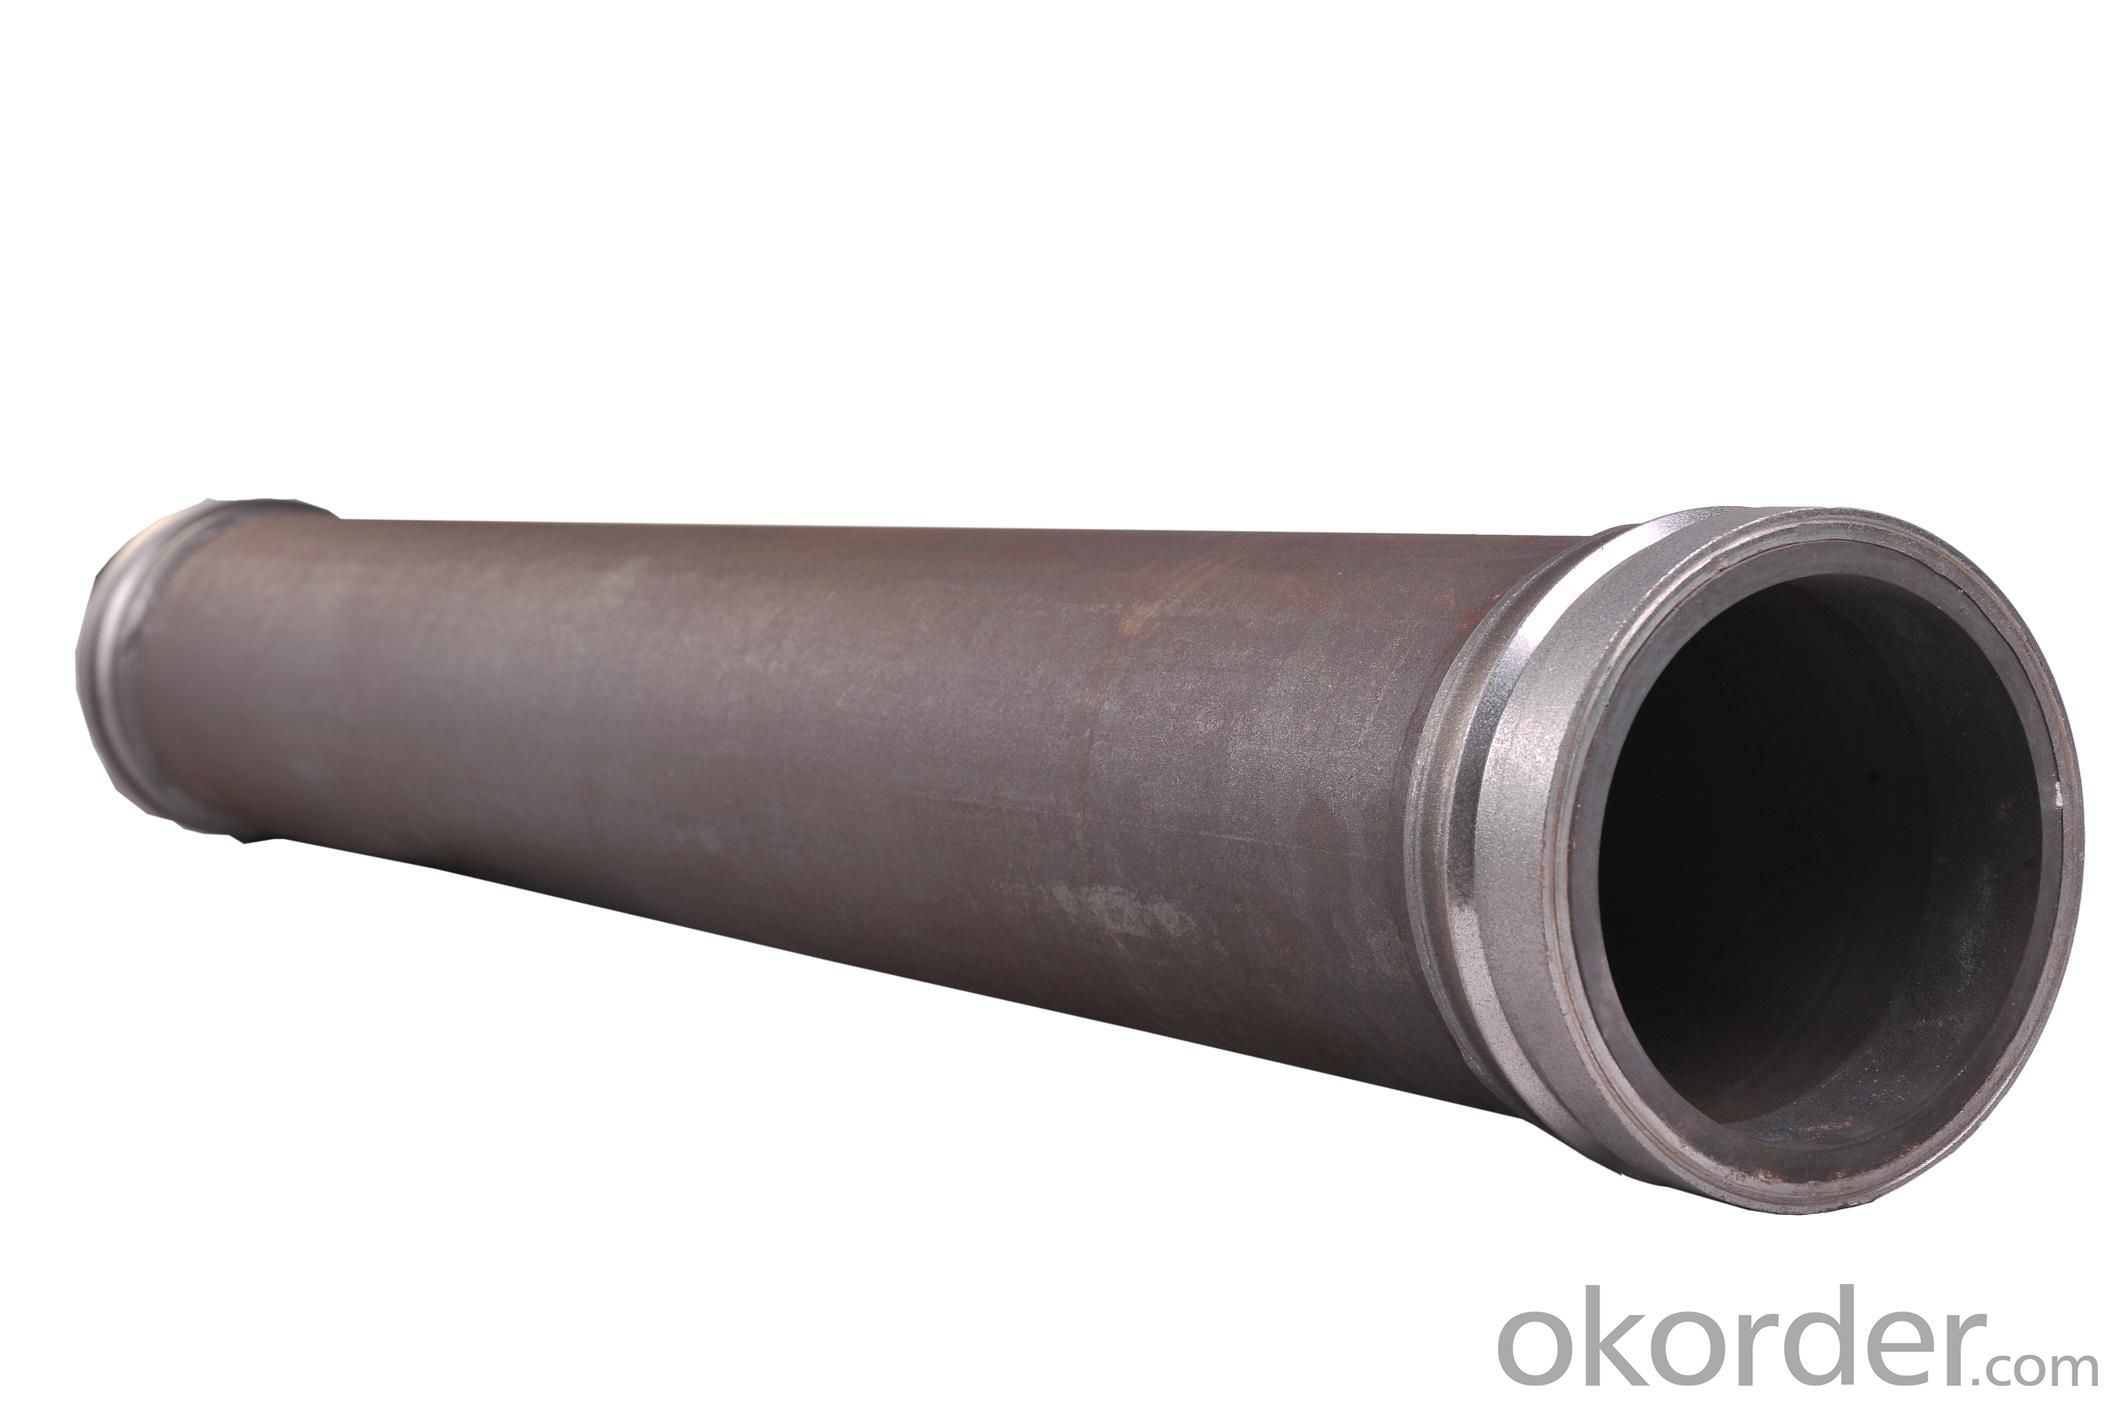 Twin Wall Pipe for Concrete Pump Pipe Thickness 7mm Length 3000mm